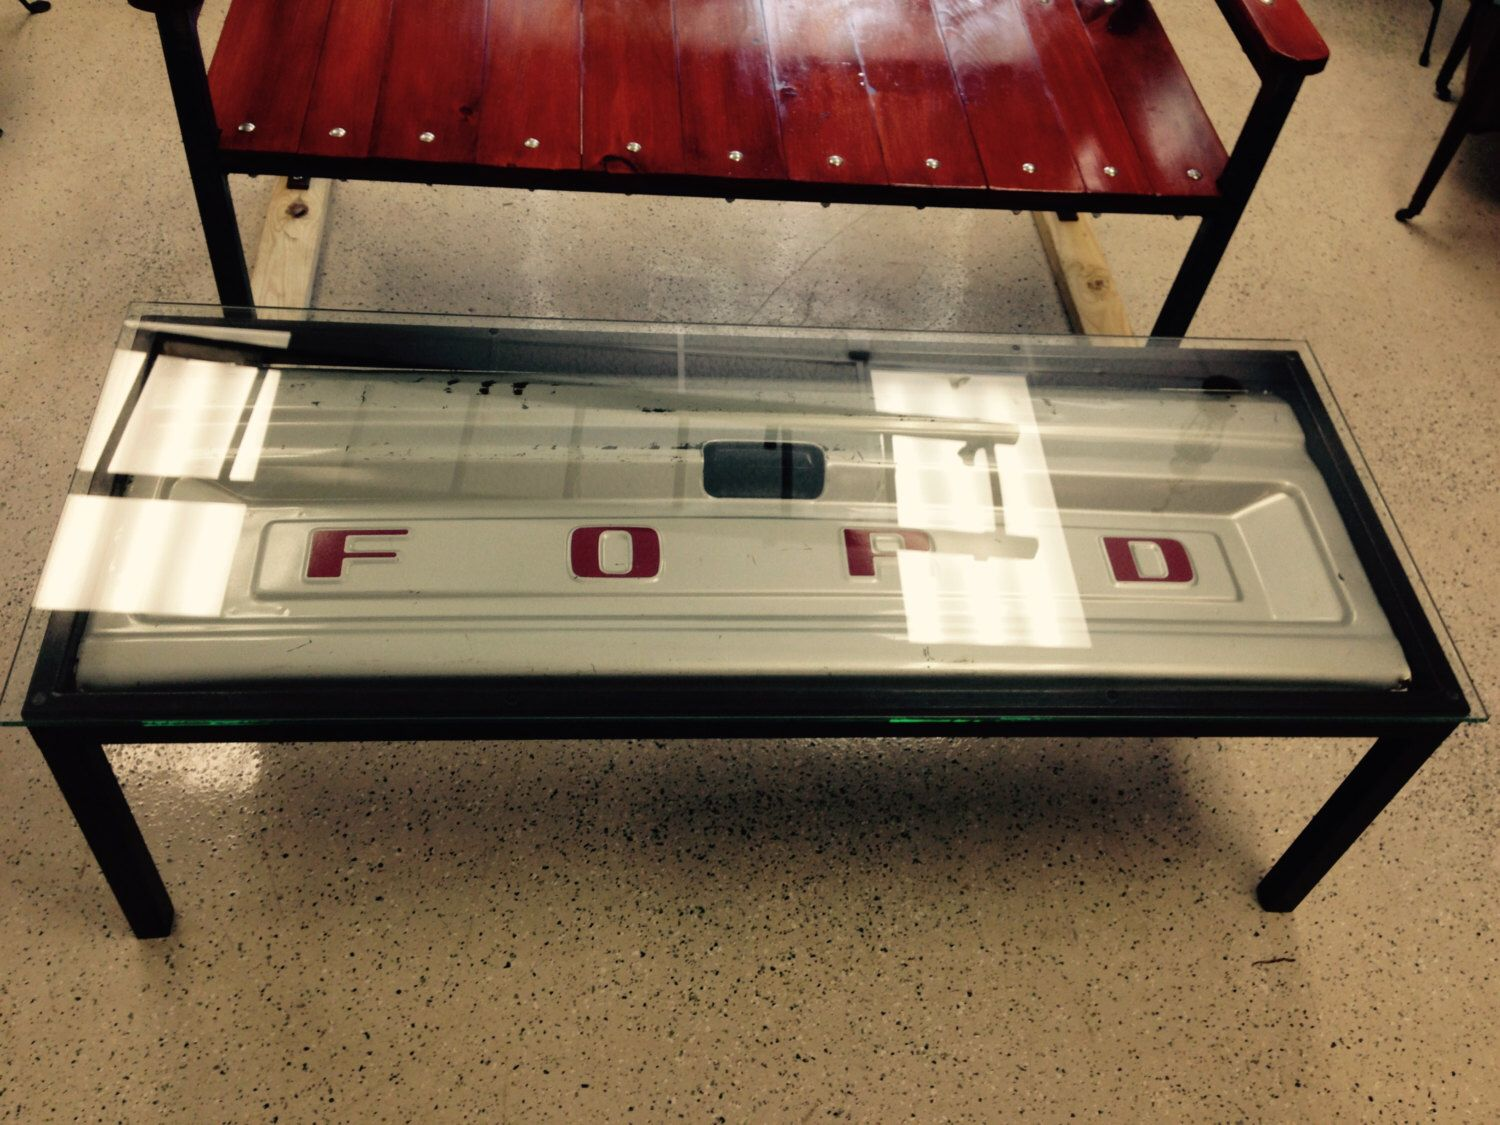 Ford tailgate coffee table by antiquerescuellc on etsy httpswww ford tailgate coffee table by antiquerescuellc on etsy httpsetsy geotapseo Images